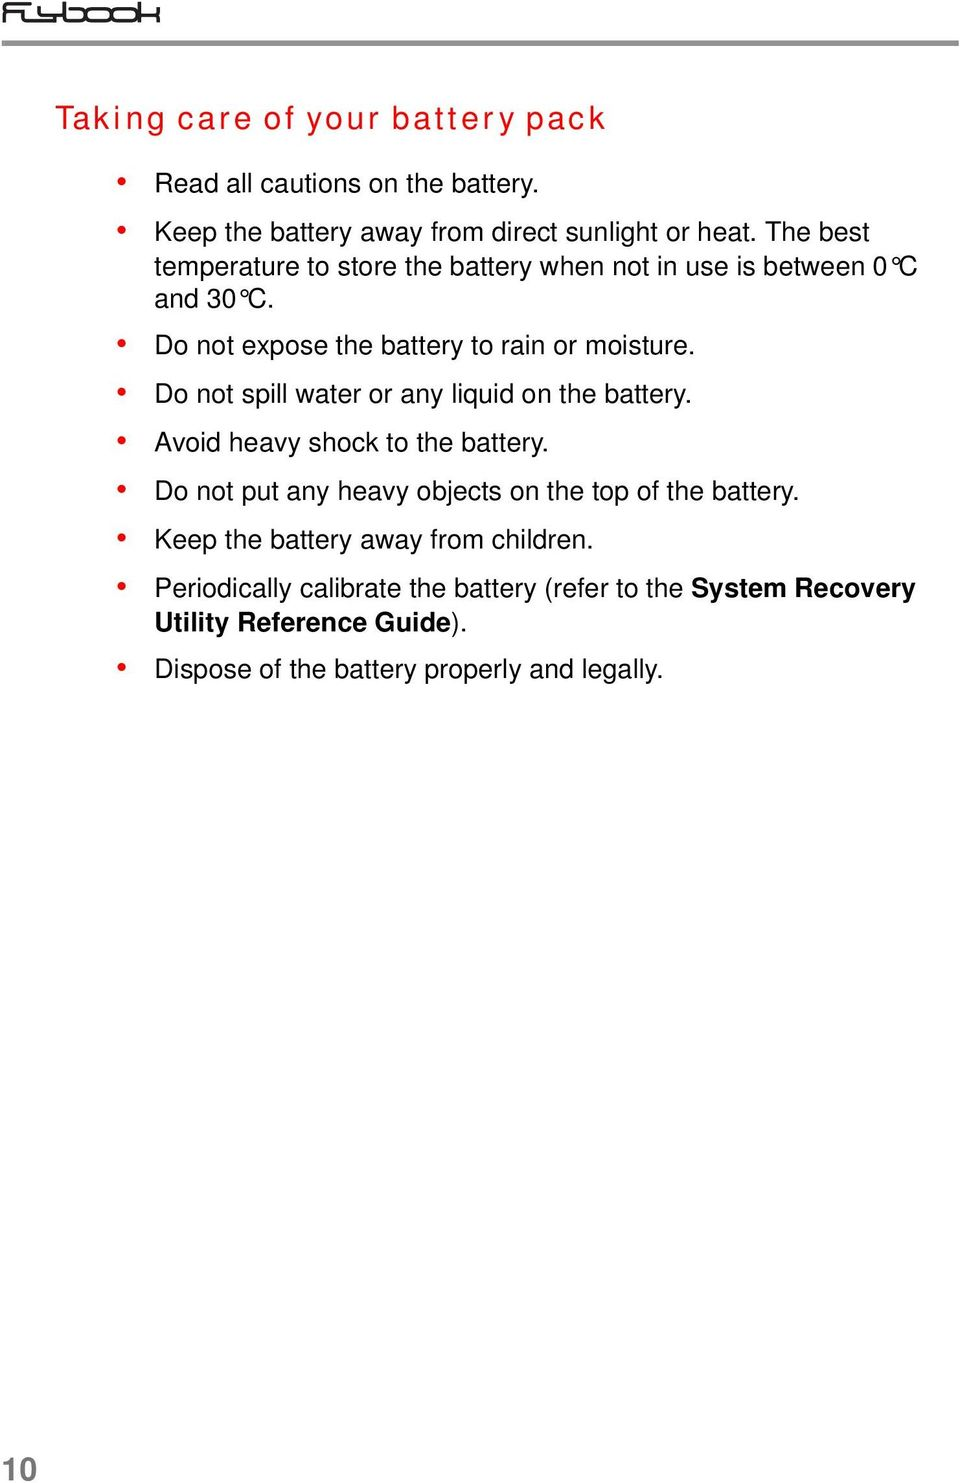 Do not spill water or any liquid on the battery. Avoid heavy shock to the battery. Do not put any heavy objects on the top of the battery.